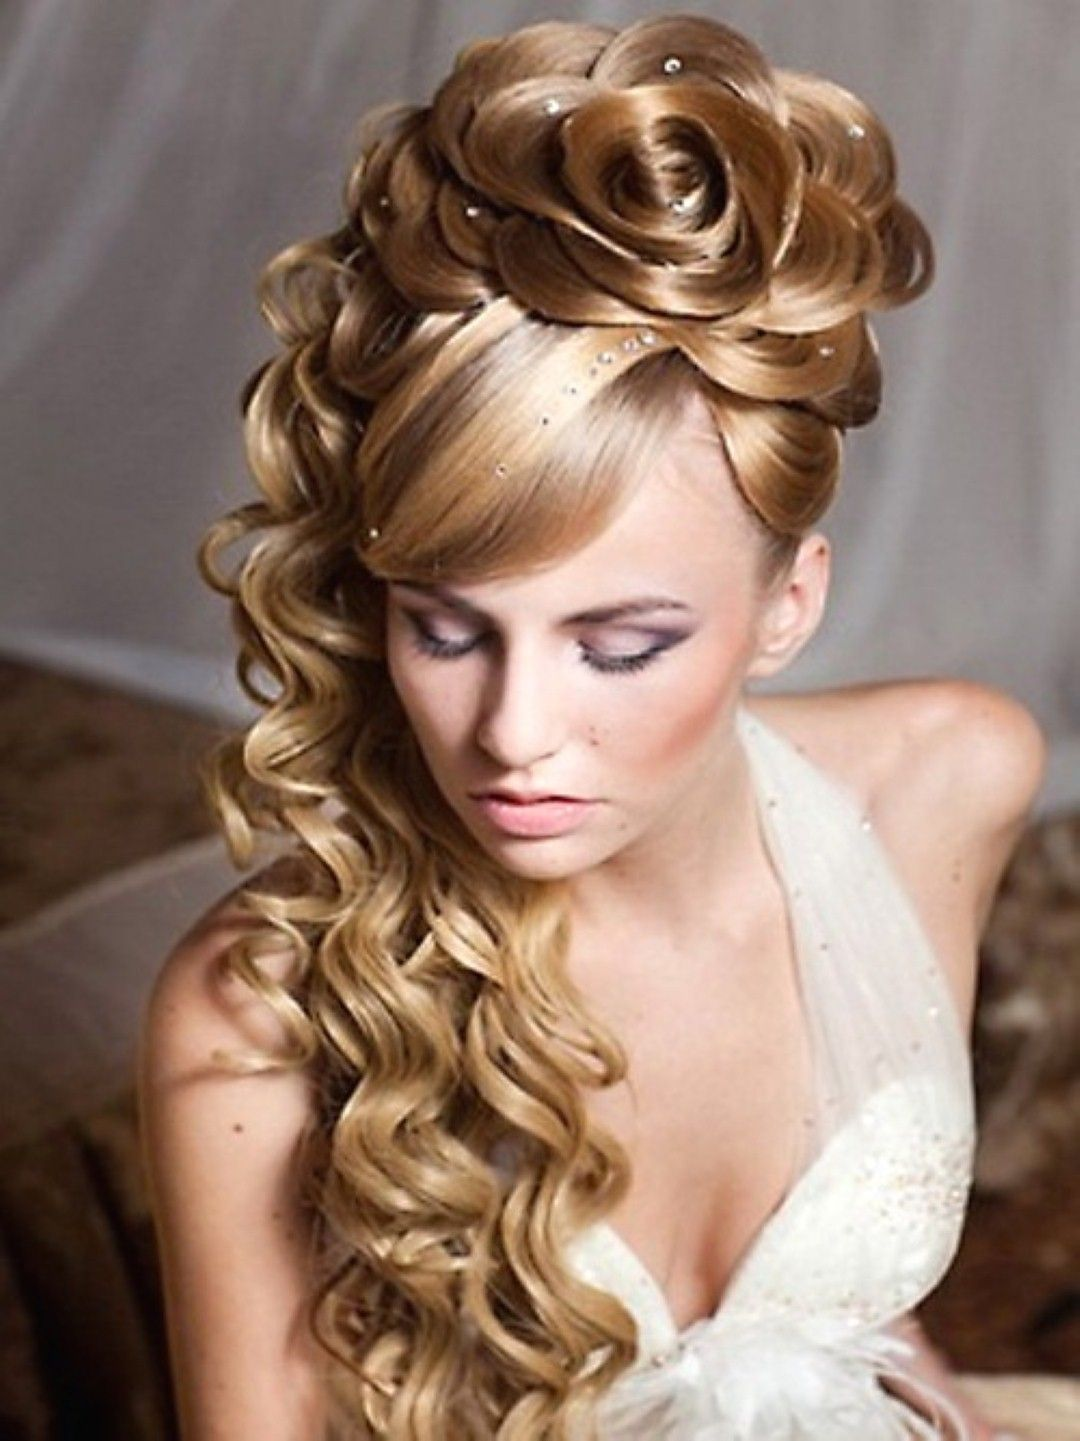 Pleasant Romantic Hairstyle For Long Hair And For Women On Pinterest Short Hairstyles Gunalazisus